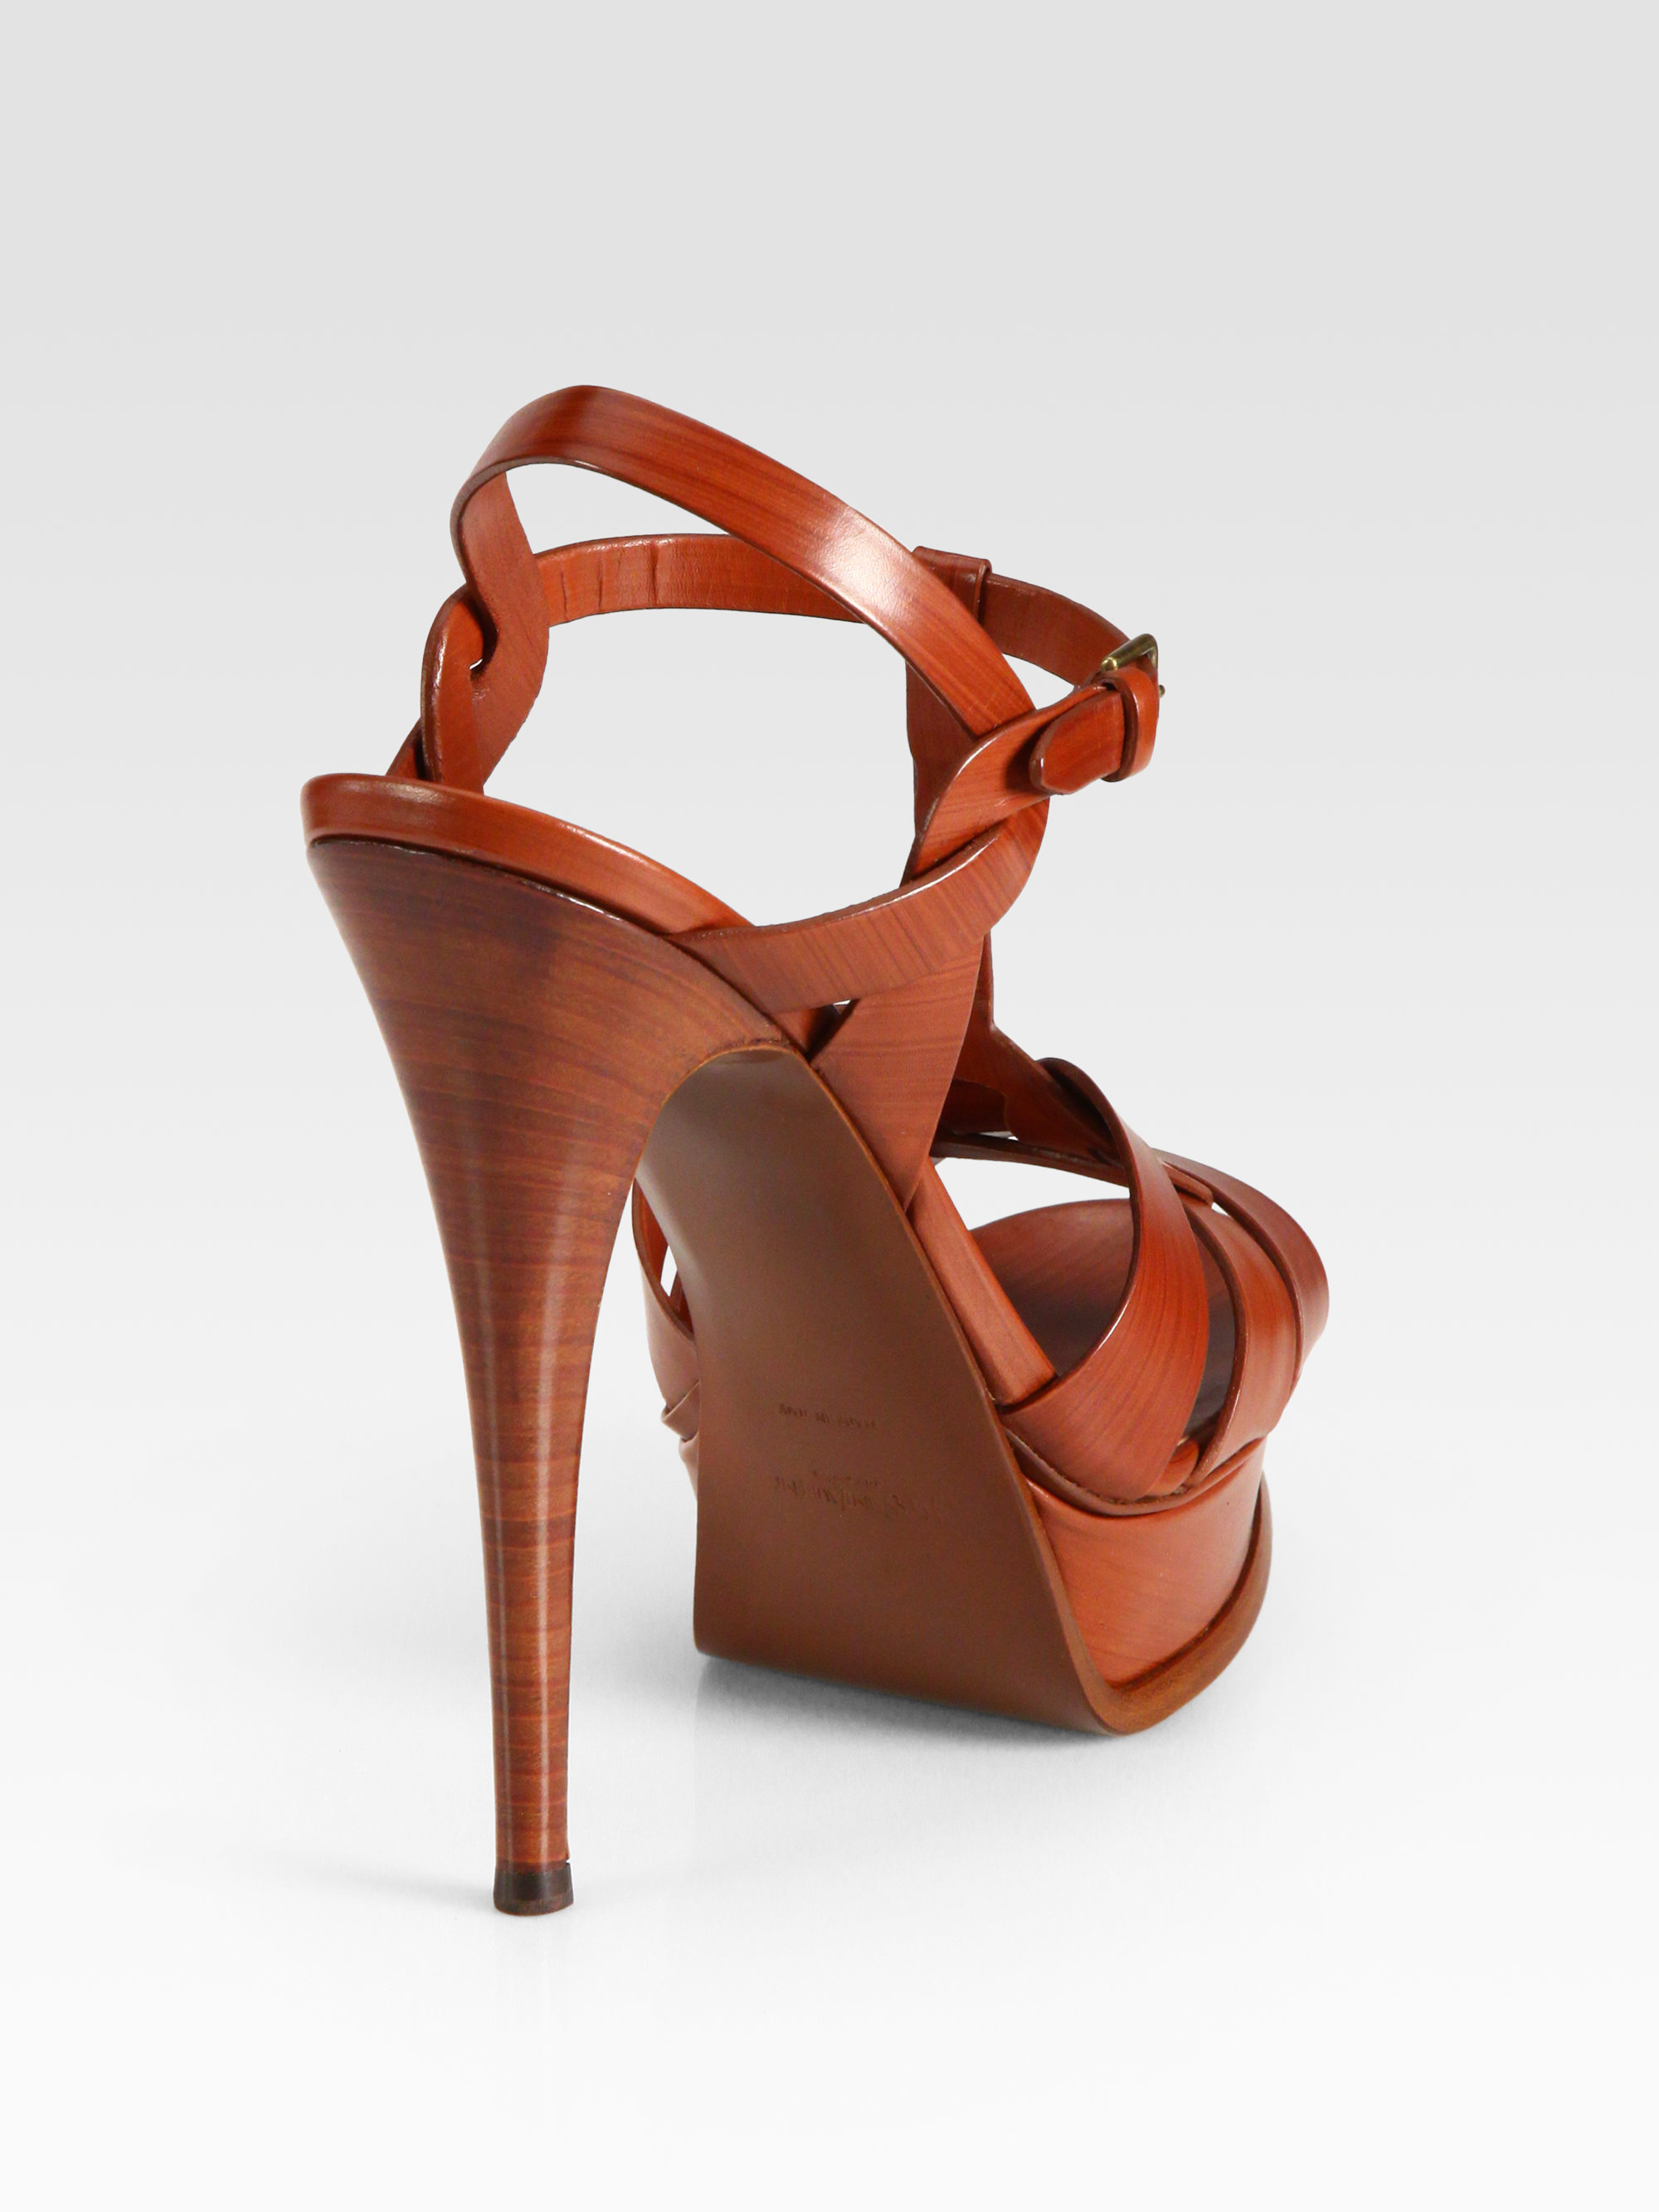 Ysl sandals shoes - Gallery